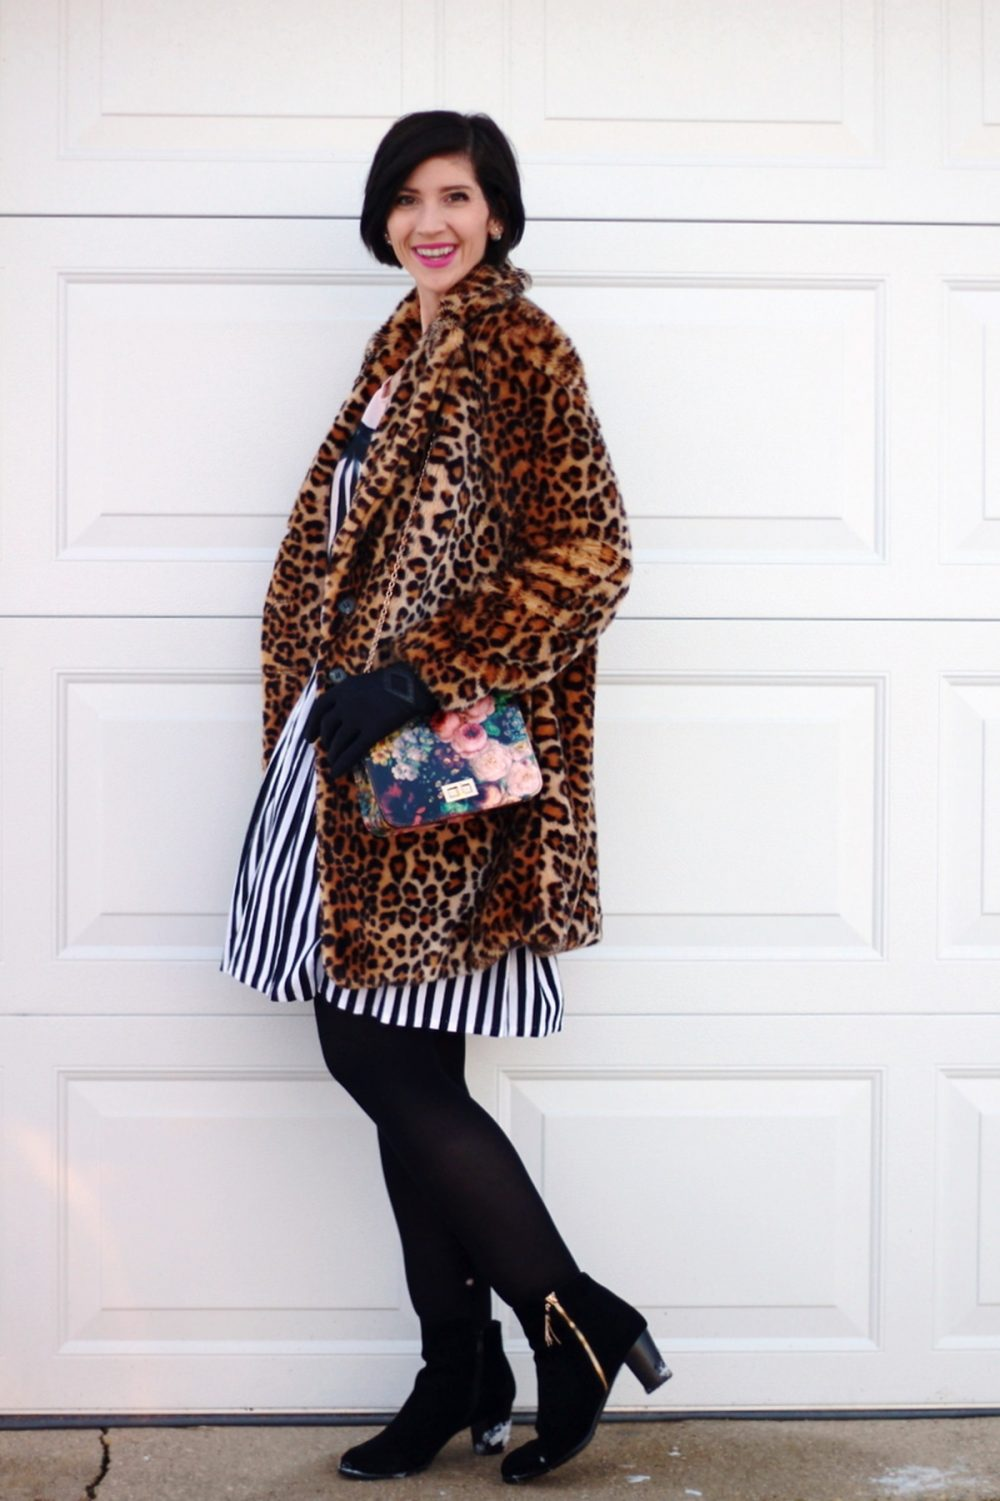 Outfit: leopard print coat, cool enamel pins, graphic bow tee, black and white striped skirt, black tights, black booties, floral print purse